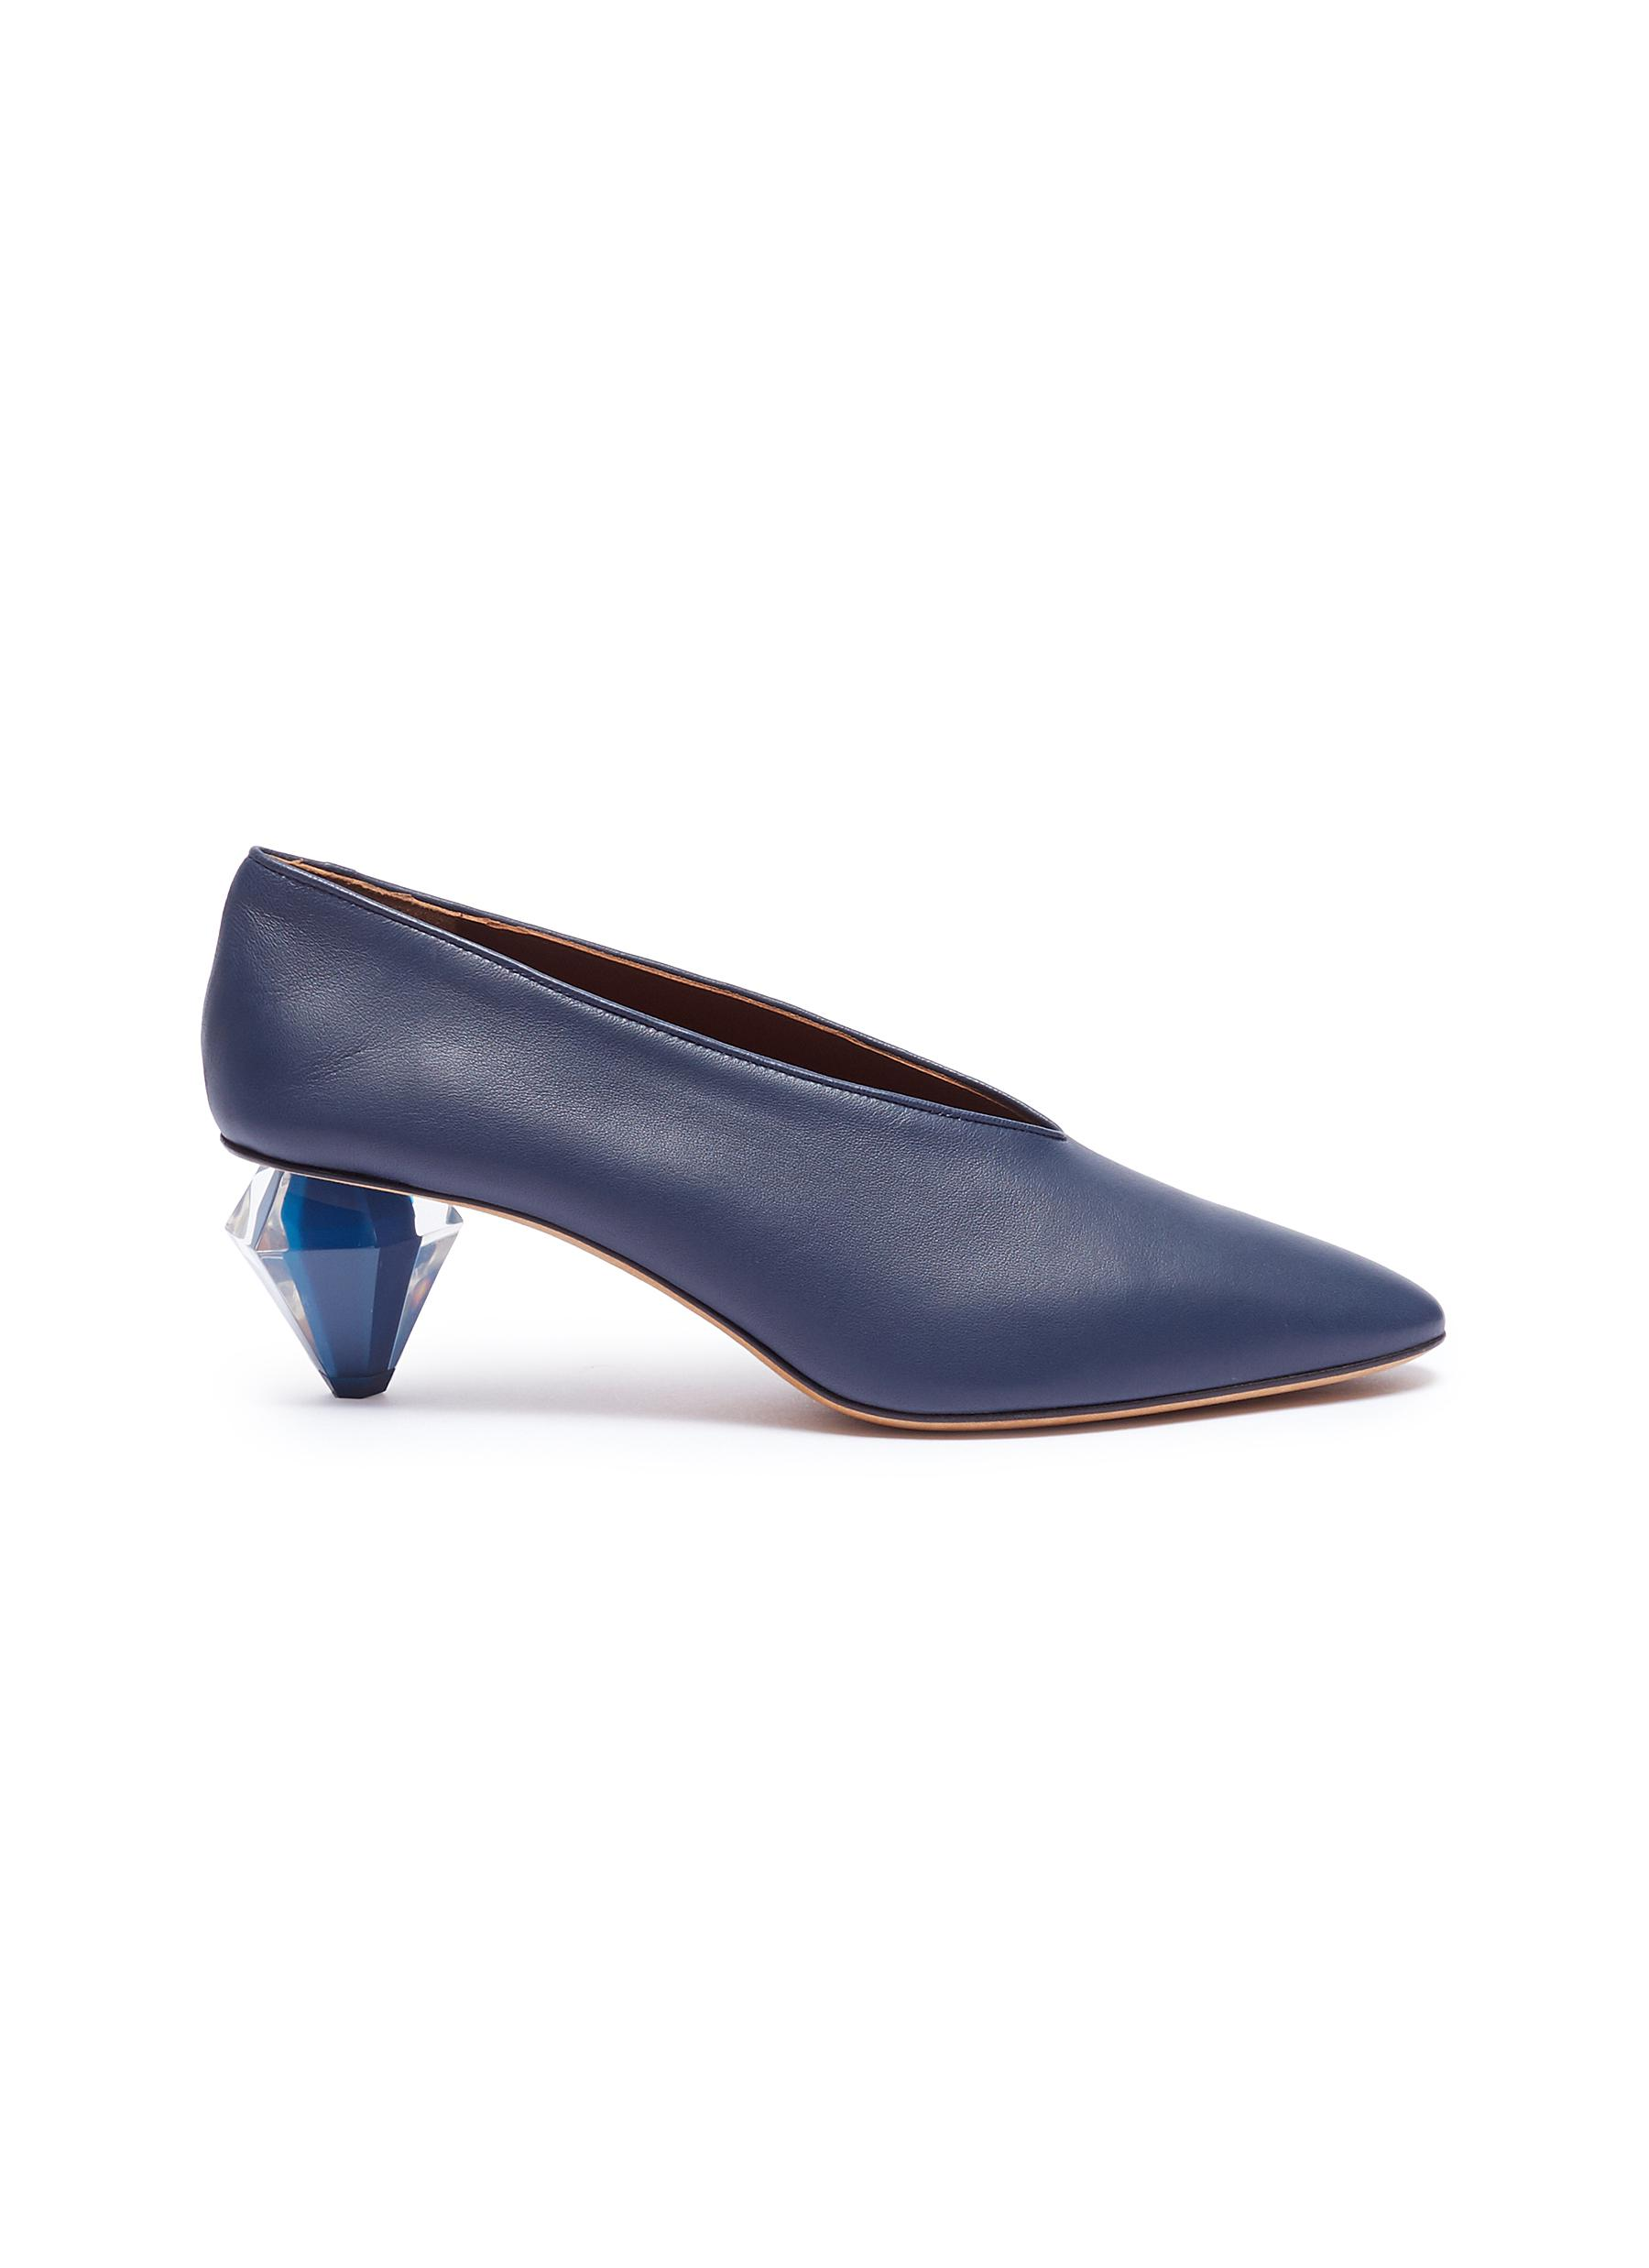 Diamante geometric heel choked-up leather pumps by Gray Matters